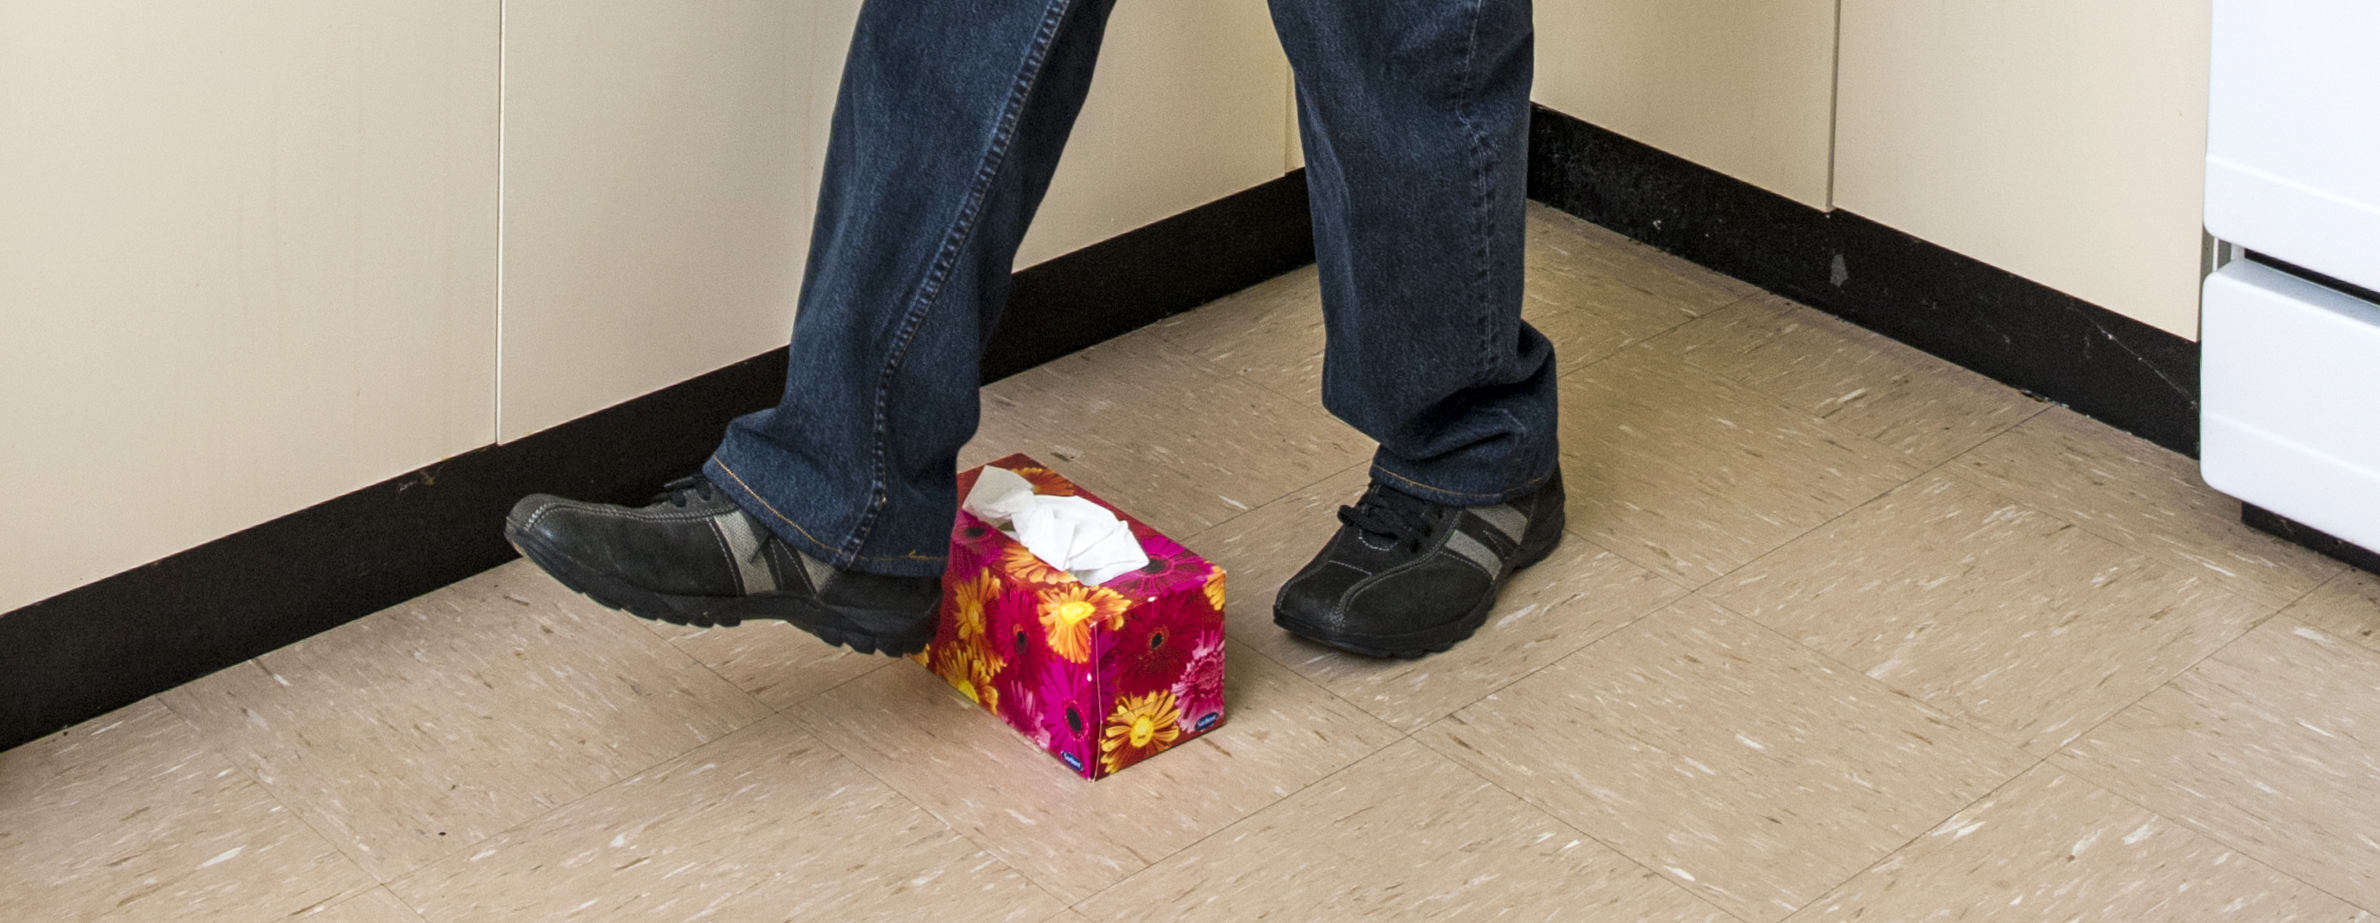 Person steps over object in study that improves balance in elderly